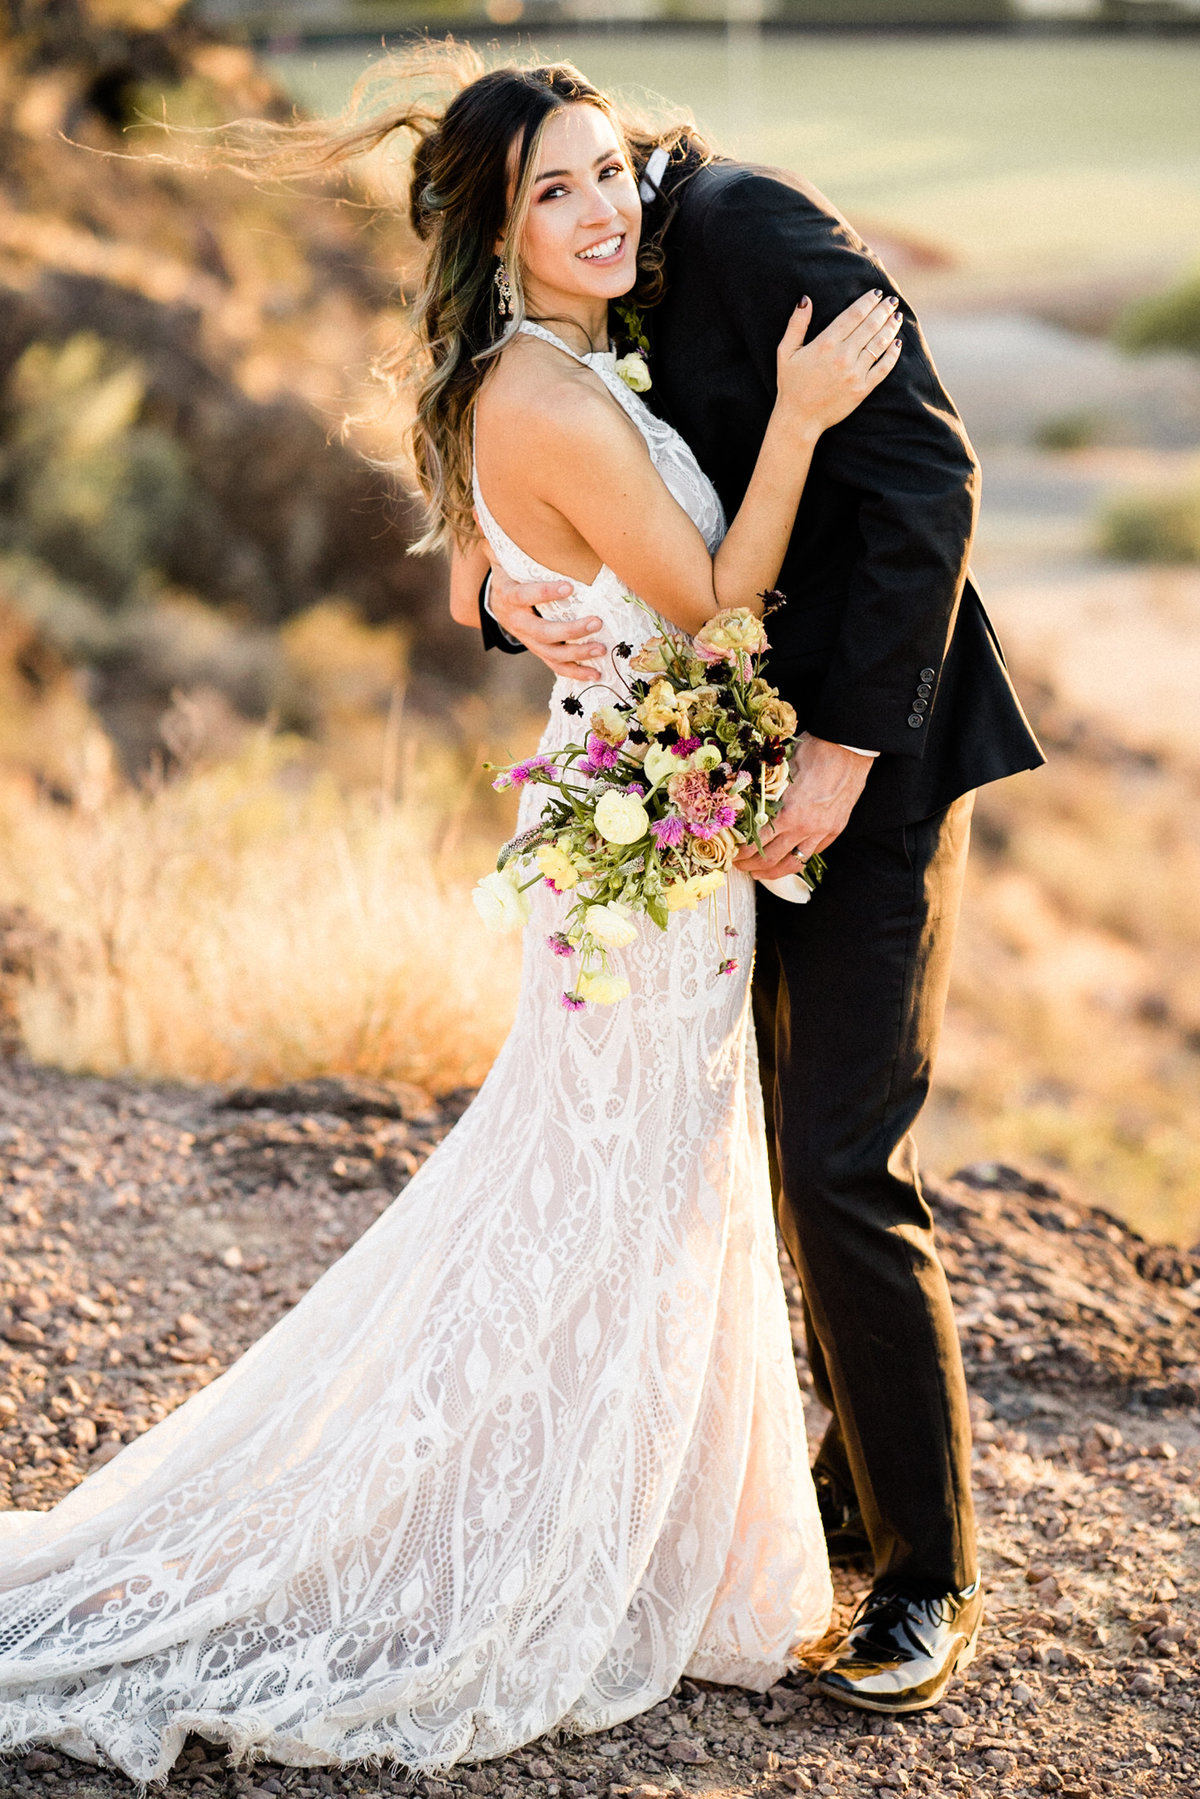 Atlas Rose Photography AZ - Adventure Elopement At The Buttes 03